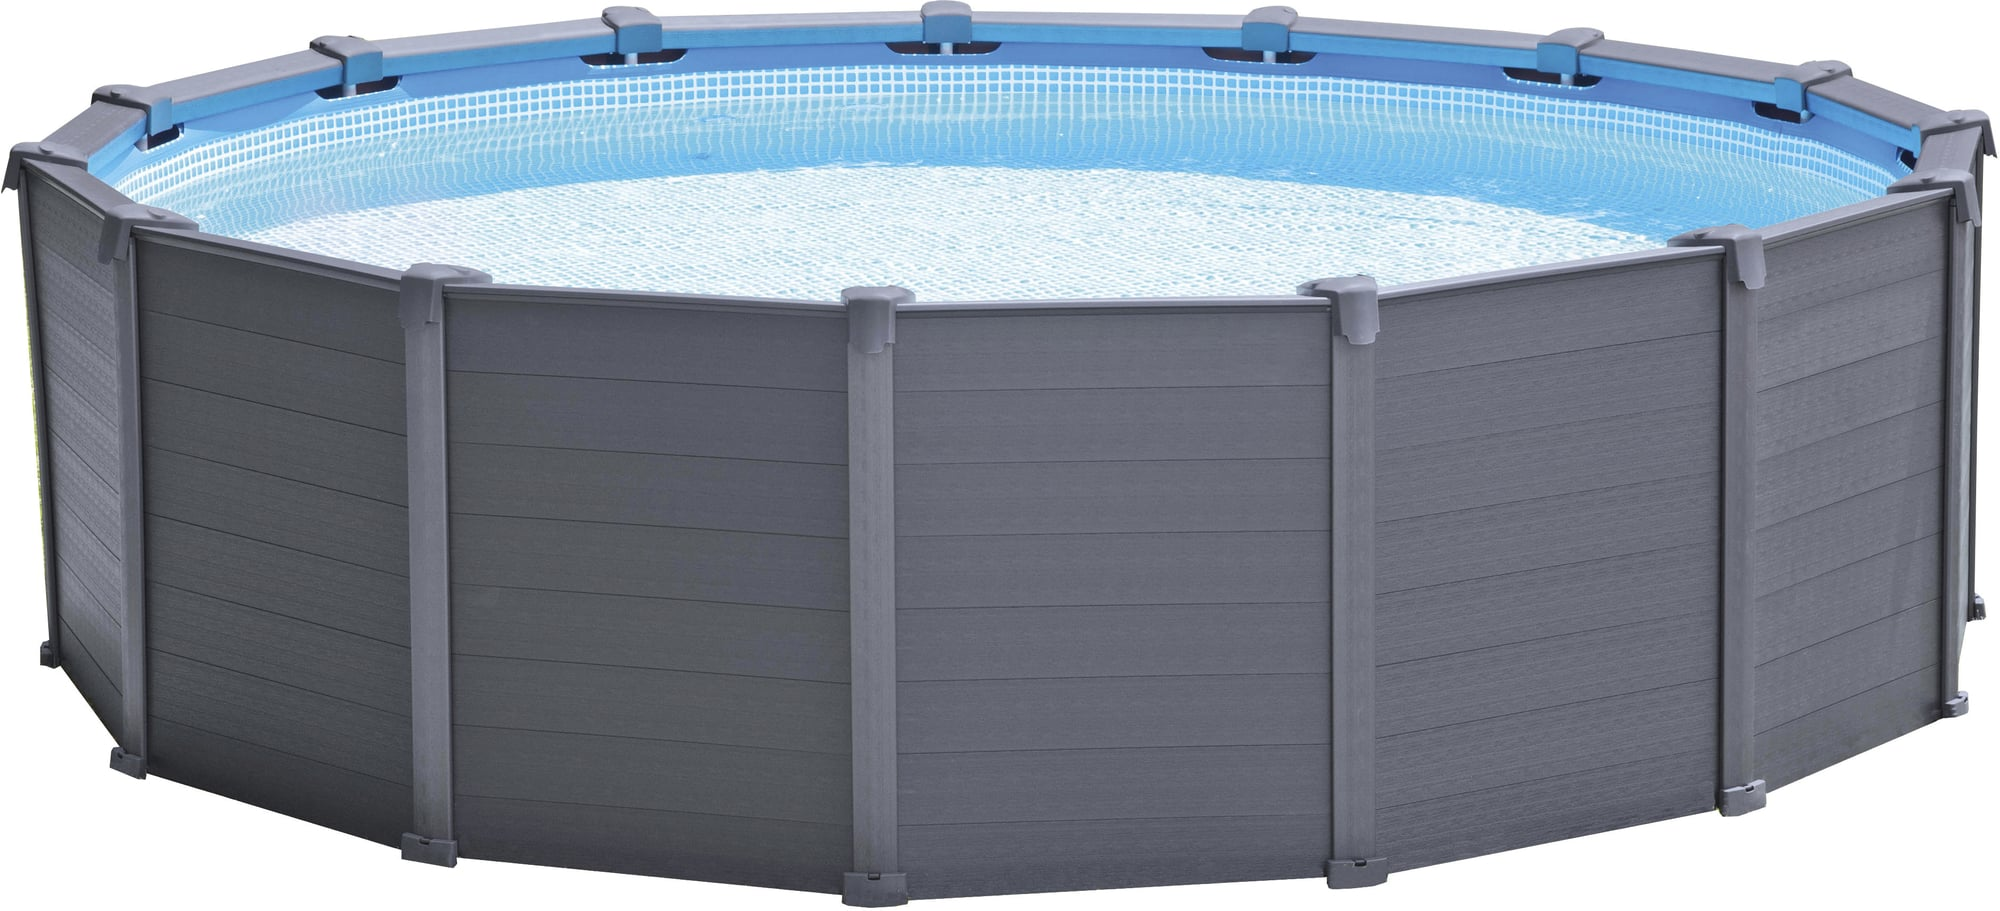 Abdeckplane Pool Erfahrungen Intex Frame Pool Graphit Ø 478 X 124 Cm